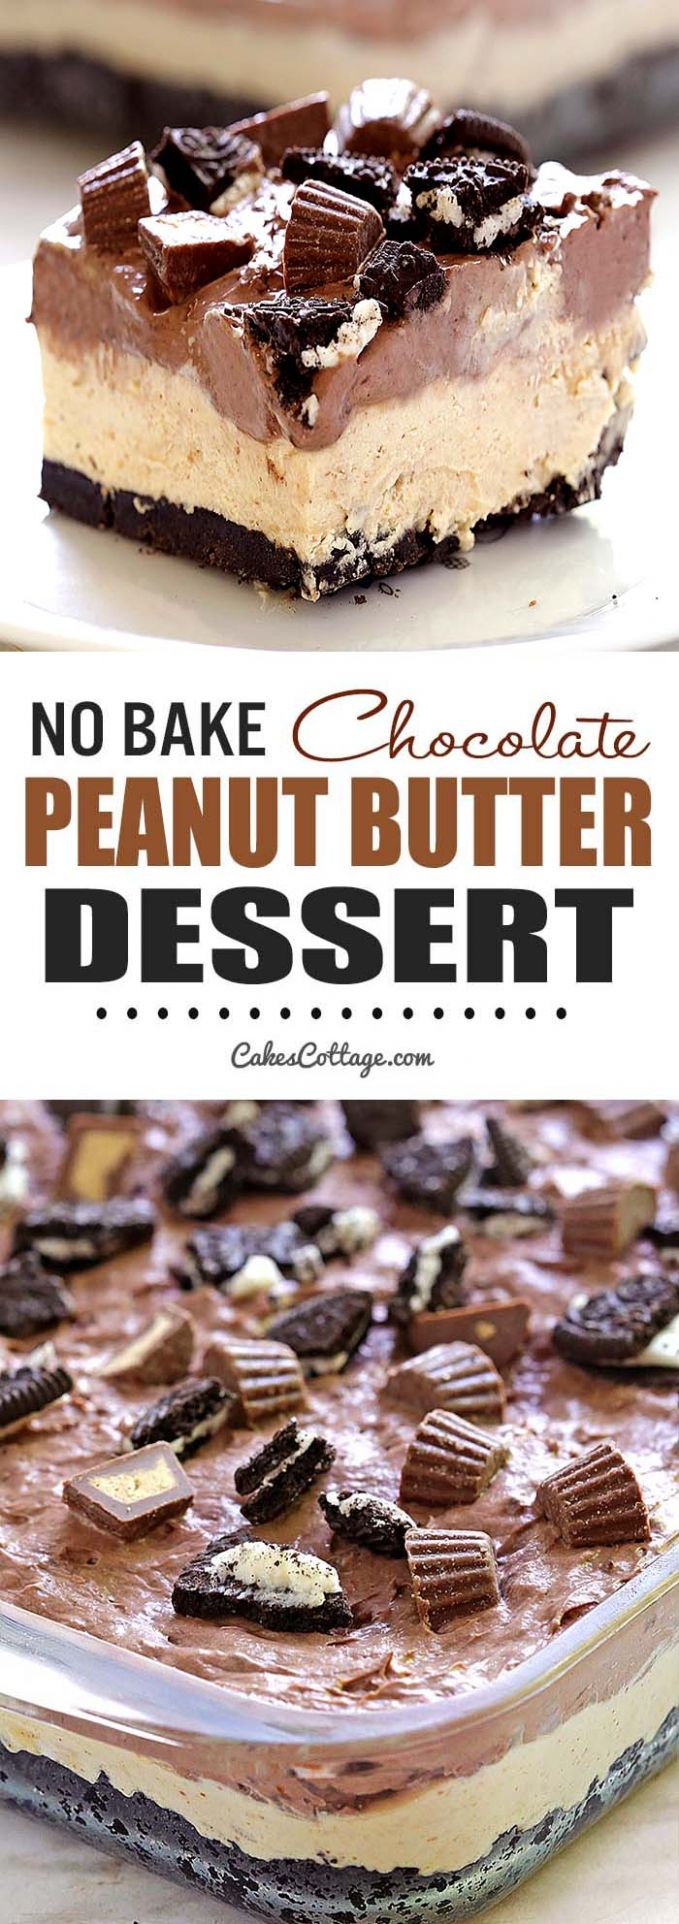 No Bake Chocolate Peanut Butter Dessert - Dessert Recipes Peanut Butter